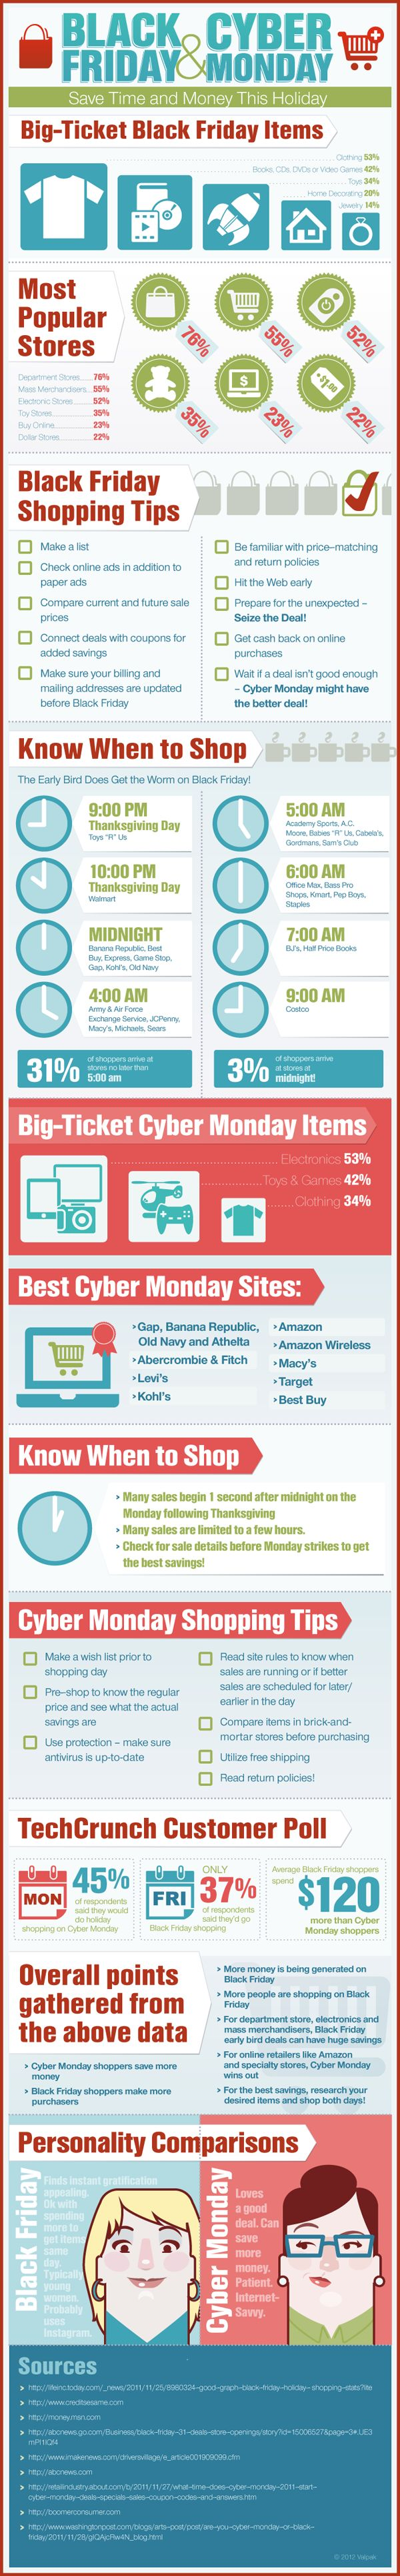 Black Friday and Cyber Monday #Infographic: Shopping tips to save time and money | The Momiverse | most popular stores, items